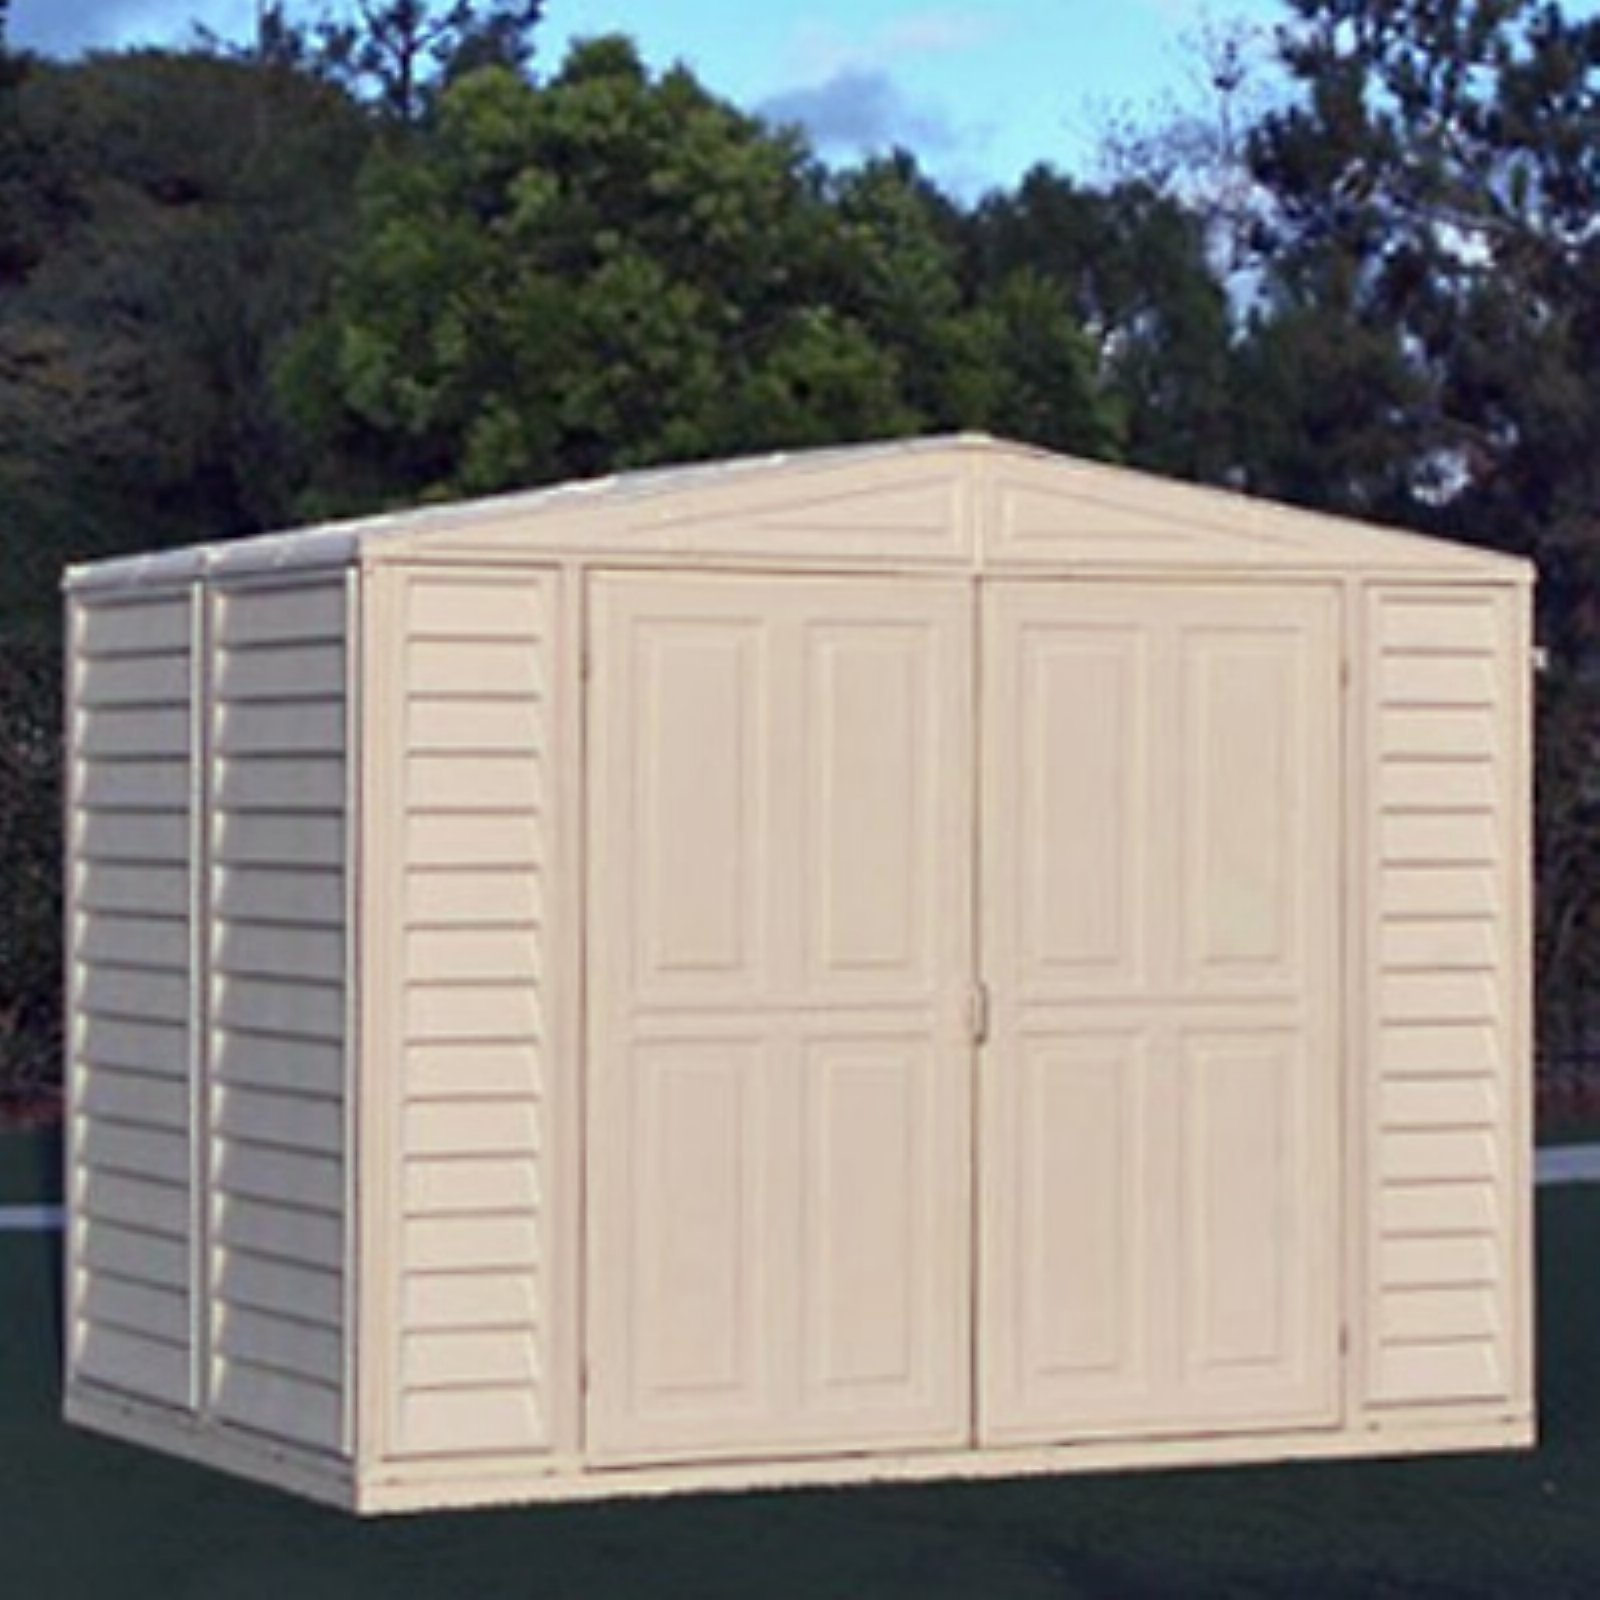 Duramax 8 x 8 ft. Duramate Storage Shed